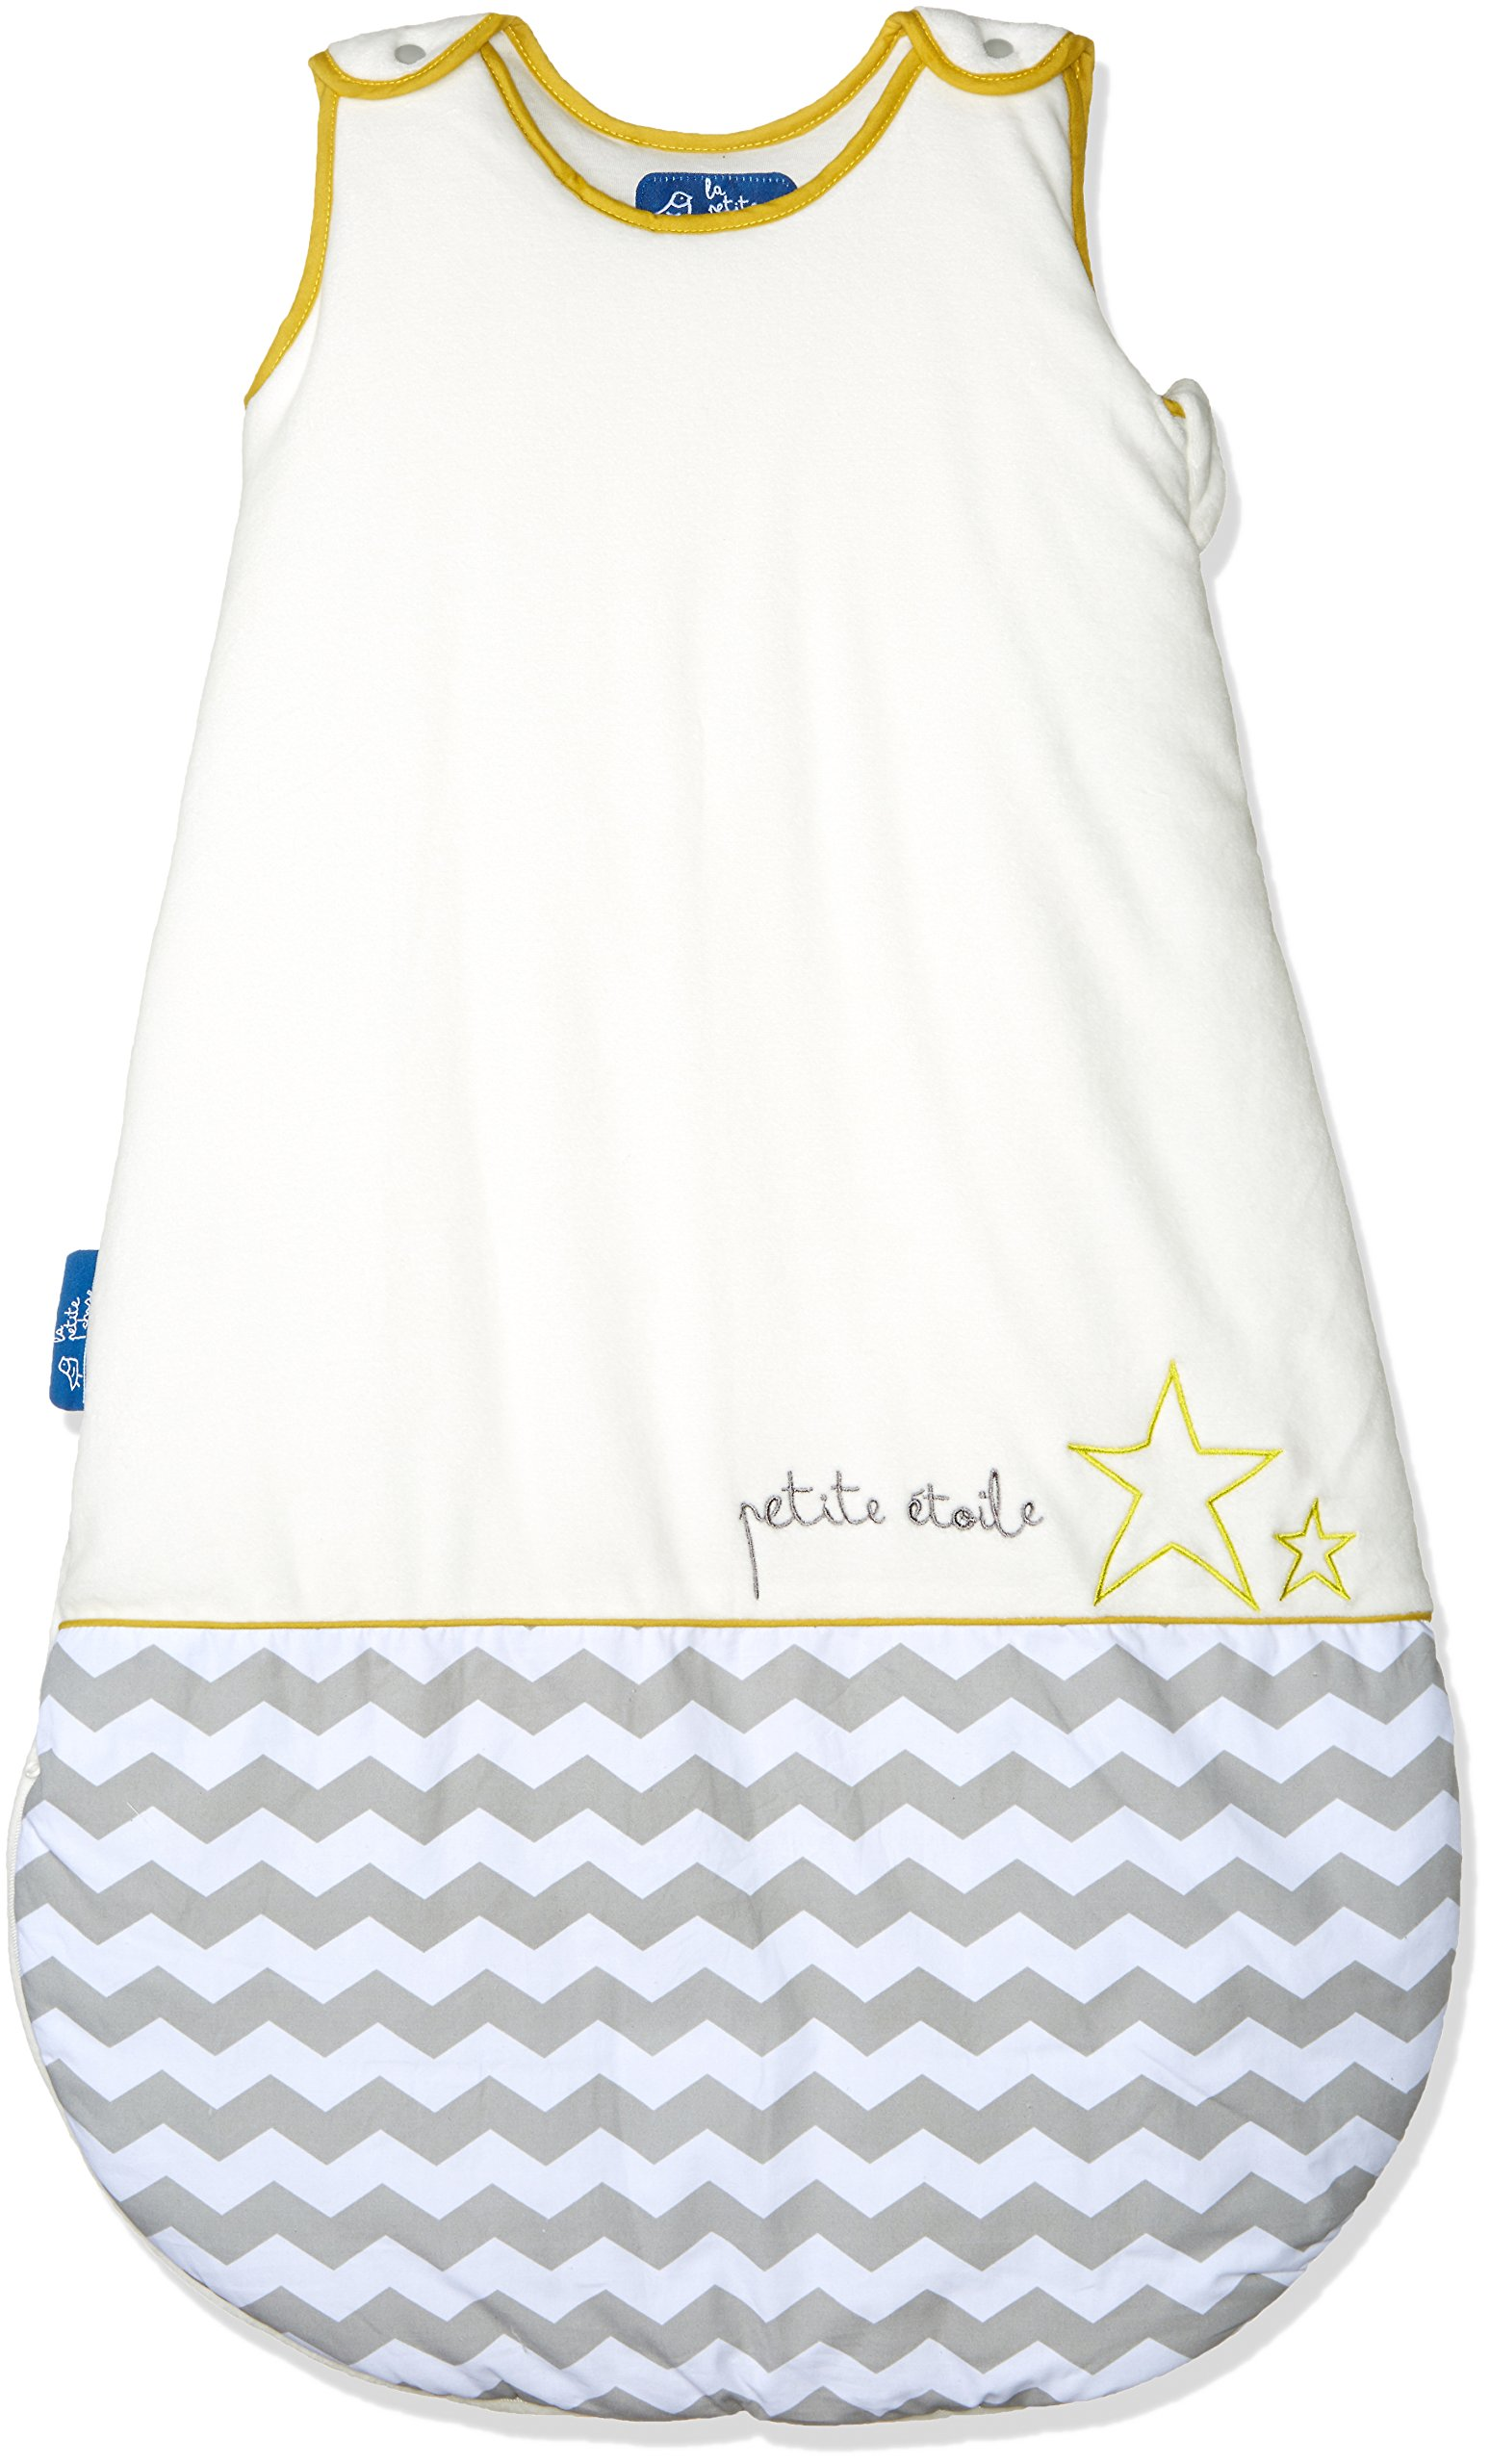 La Petite Chose Baby Sleeping Sack, Adjustable Length & Naturally Cozy Cotton for Soft, Safe Sleep (Little Star 9-24 months)